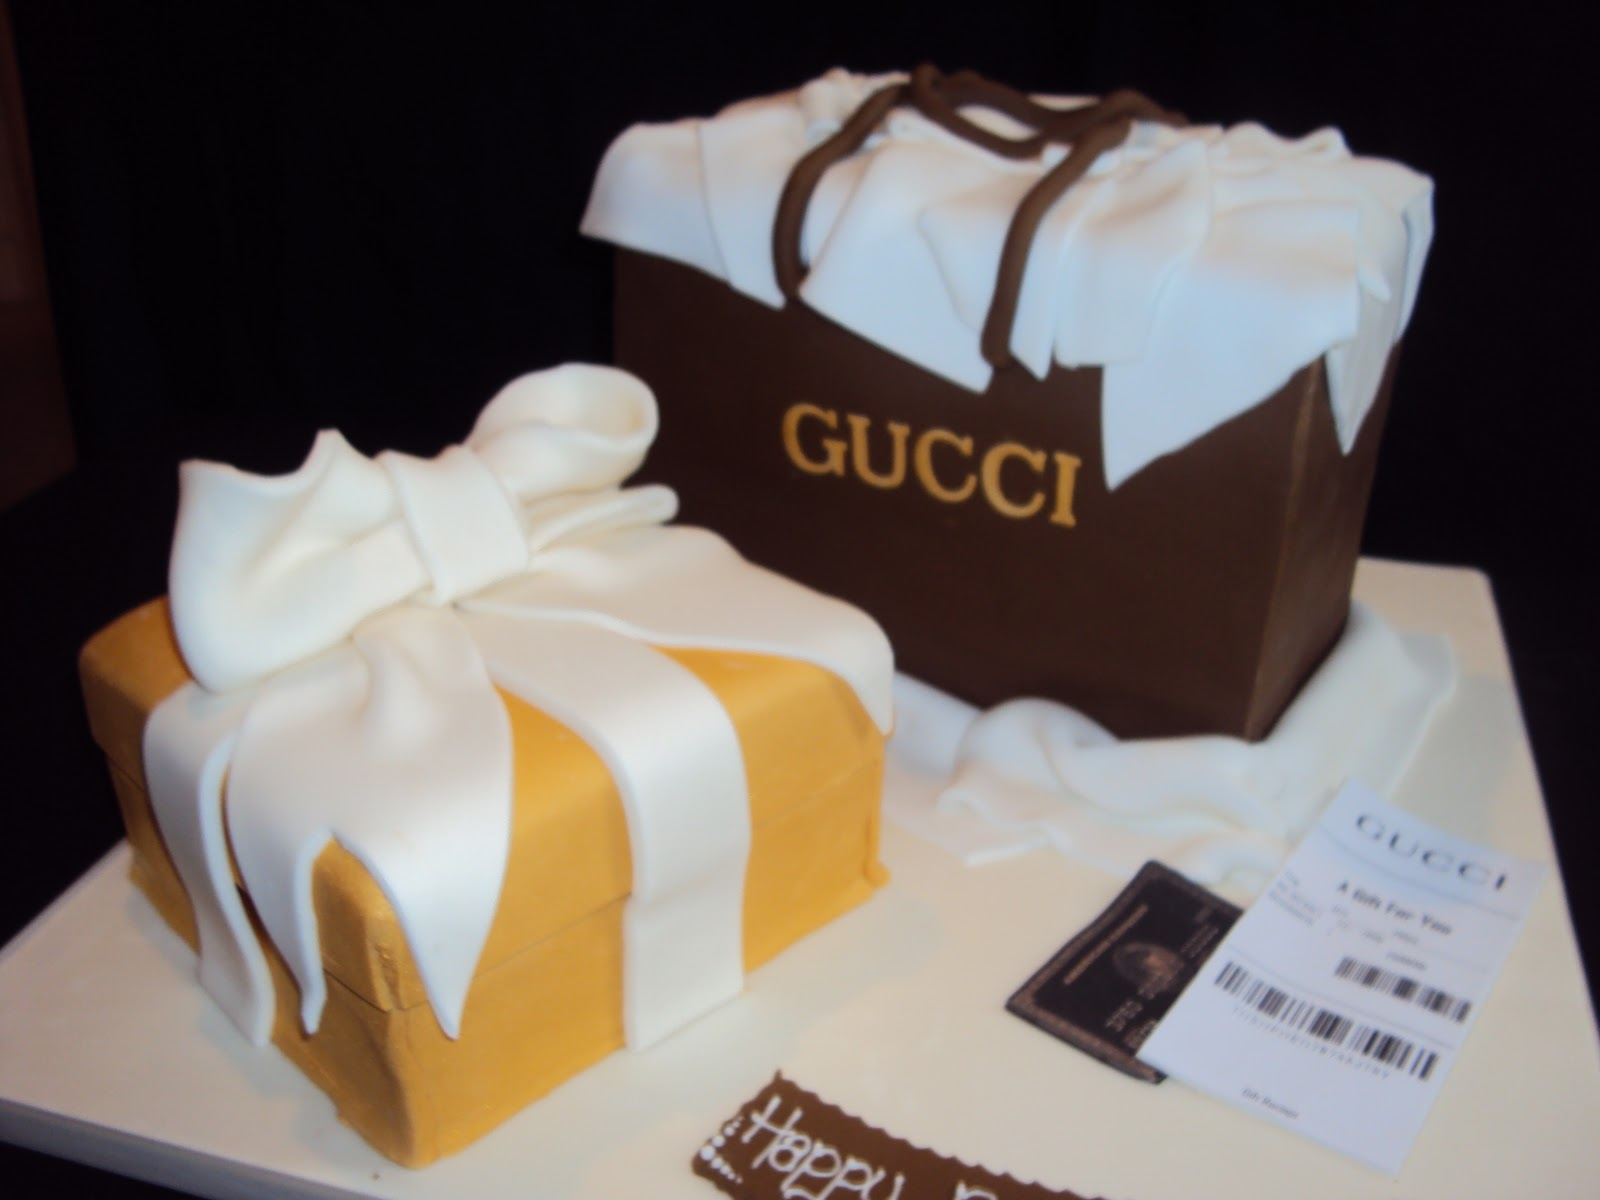 f3aaa4360c7d Gucci Shopping Bag and Present Box. I made this cake for a Lady, she own  her own boutique so I wanted to make a cake for her that showed her love of  fashion ...